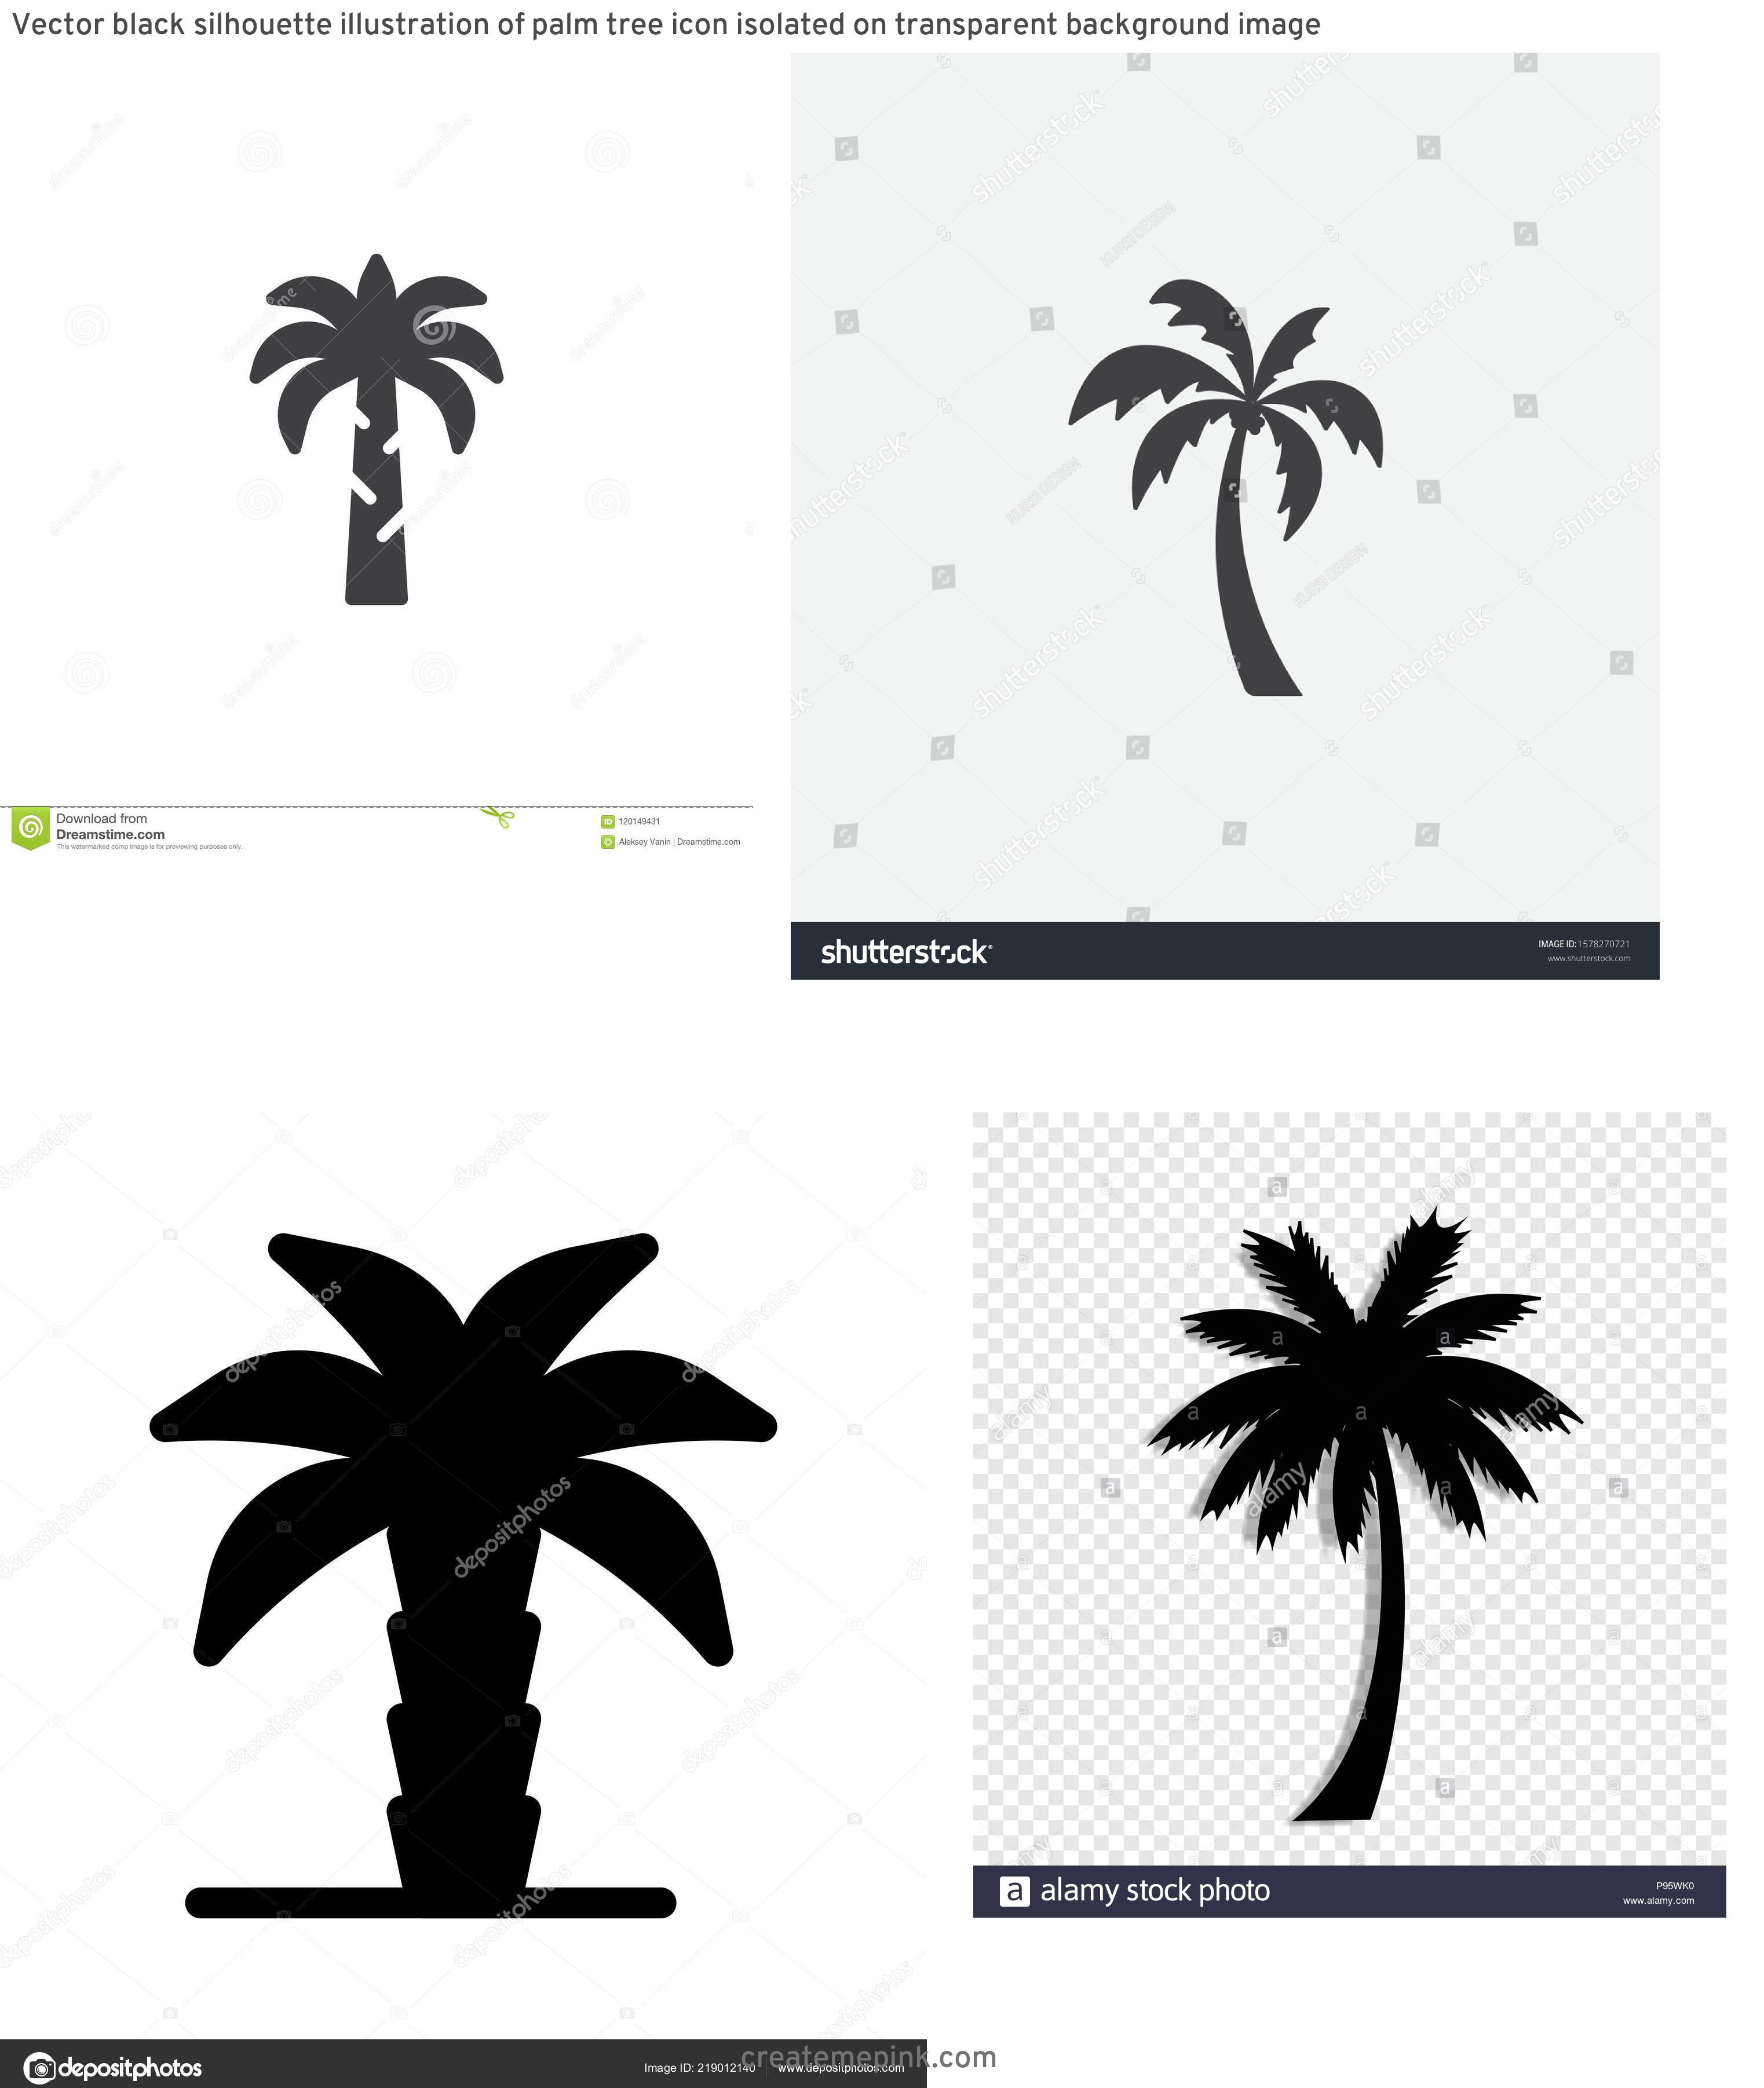 Palm Tree Icon Vector: Vector Black Silhouette Illustration Of Palm Tree Icon Isolated On Transparent Background Image